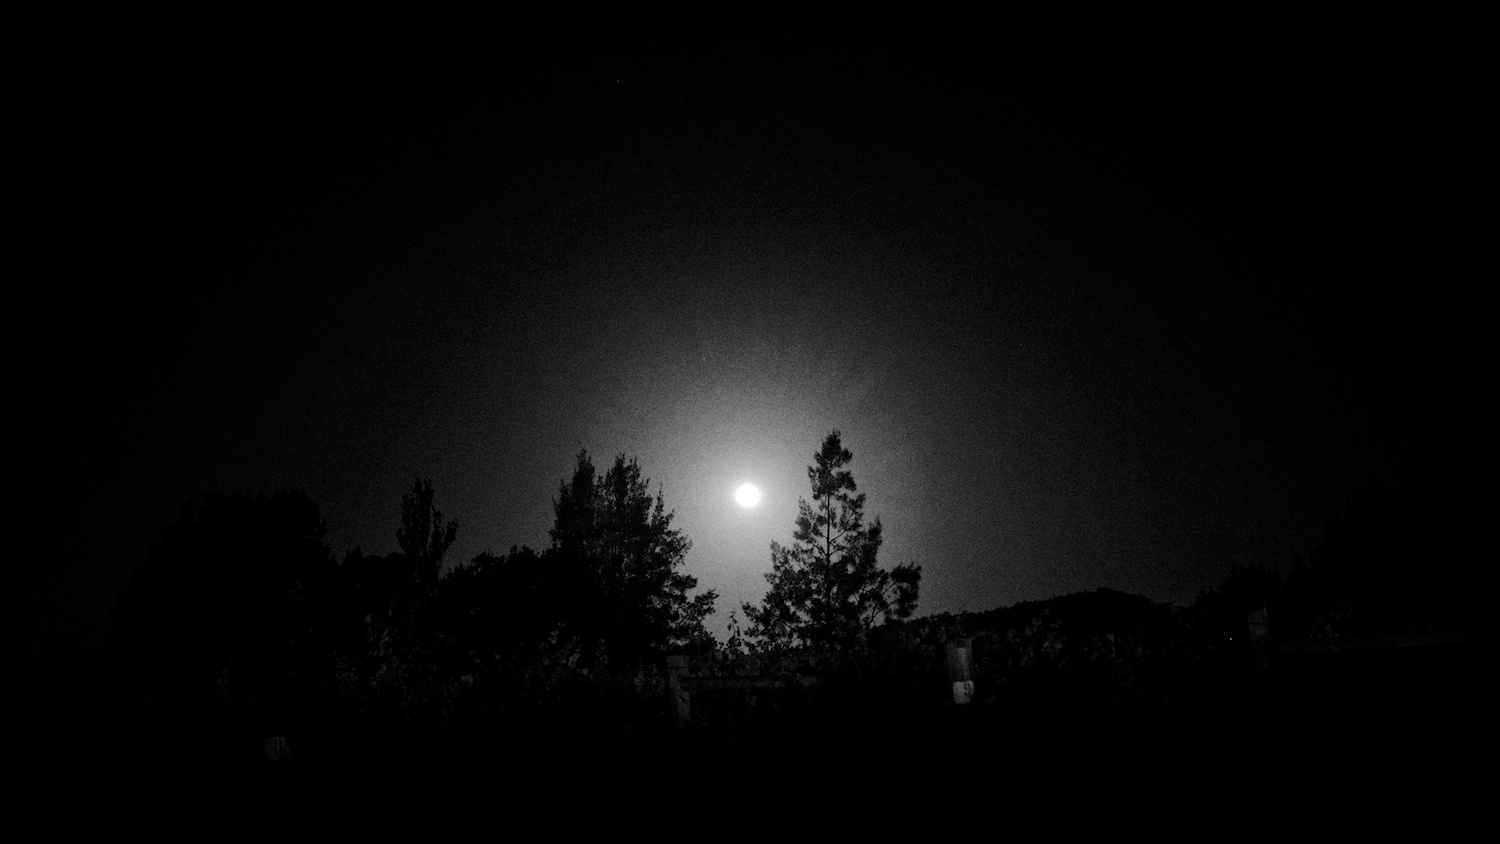 The moonlight hitting a few trees in the Hunter Valley, NSW, one of Australia's wine regions.